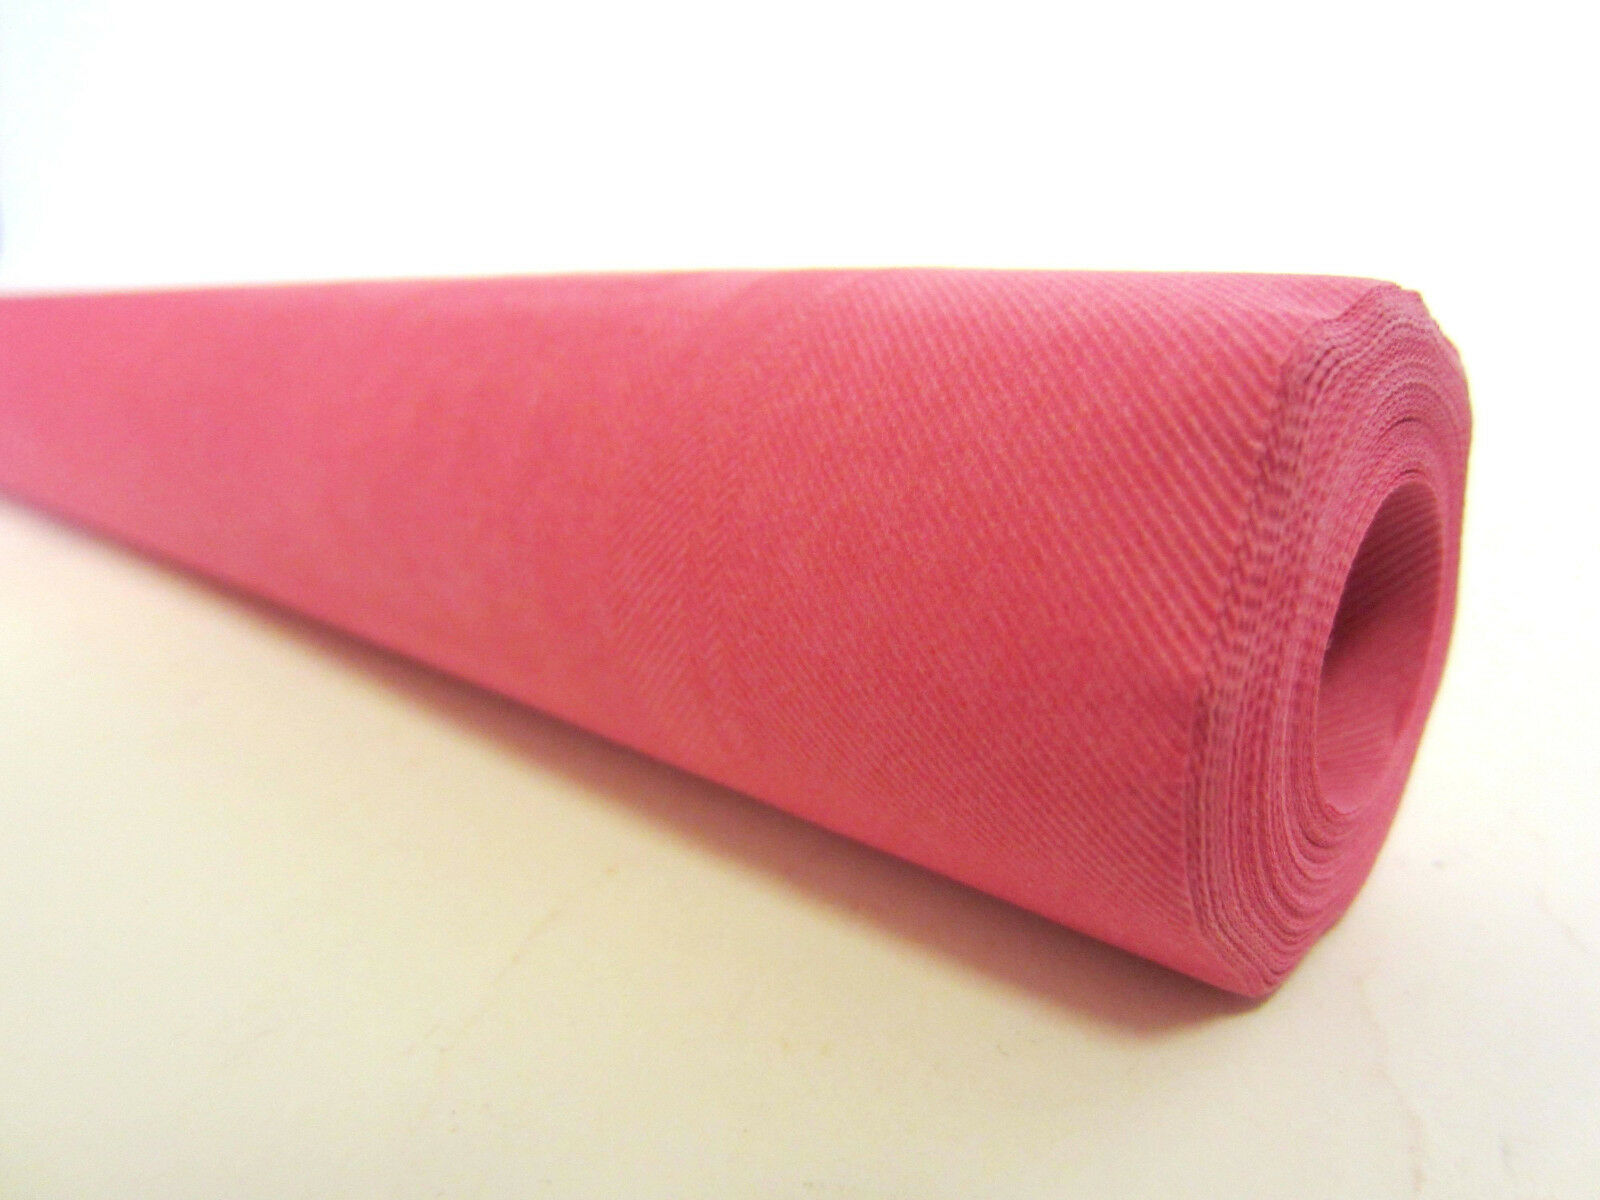 Red 7 m Kingfisher Paper Banqueting Roll